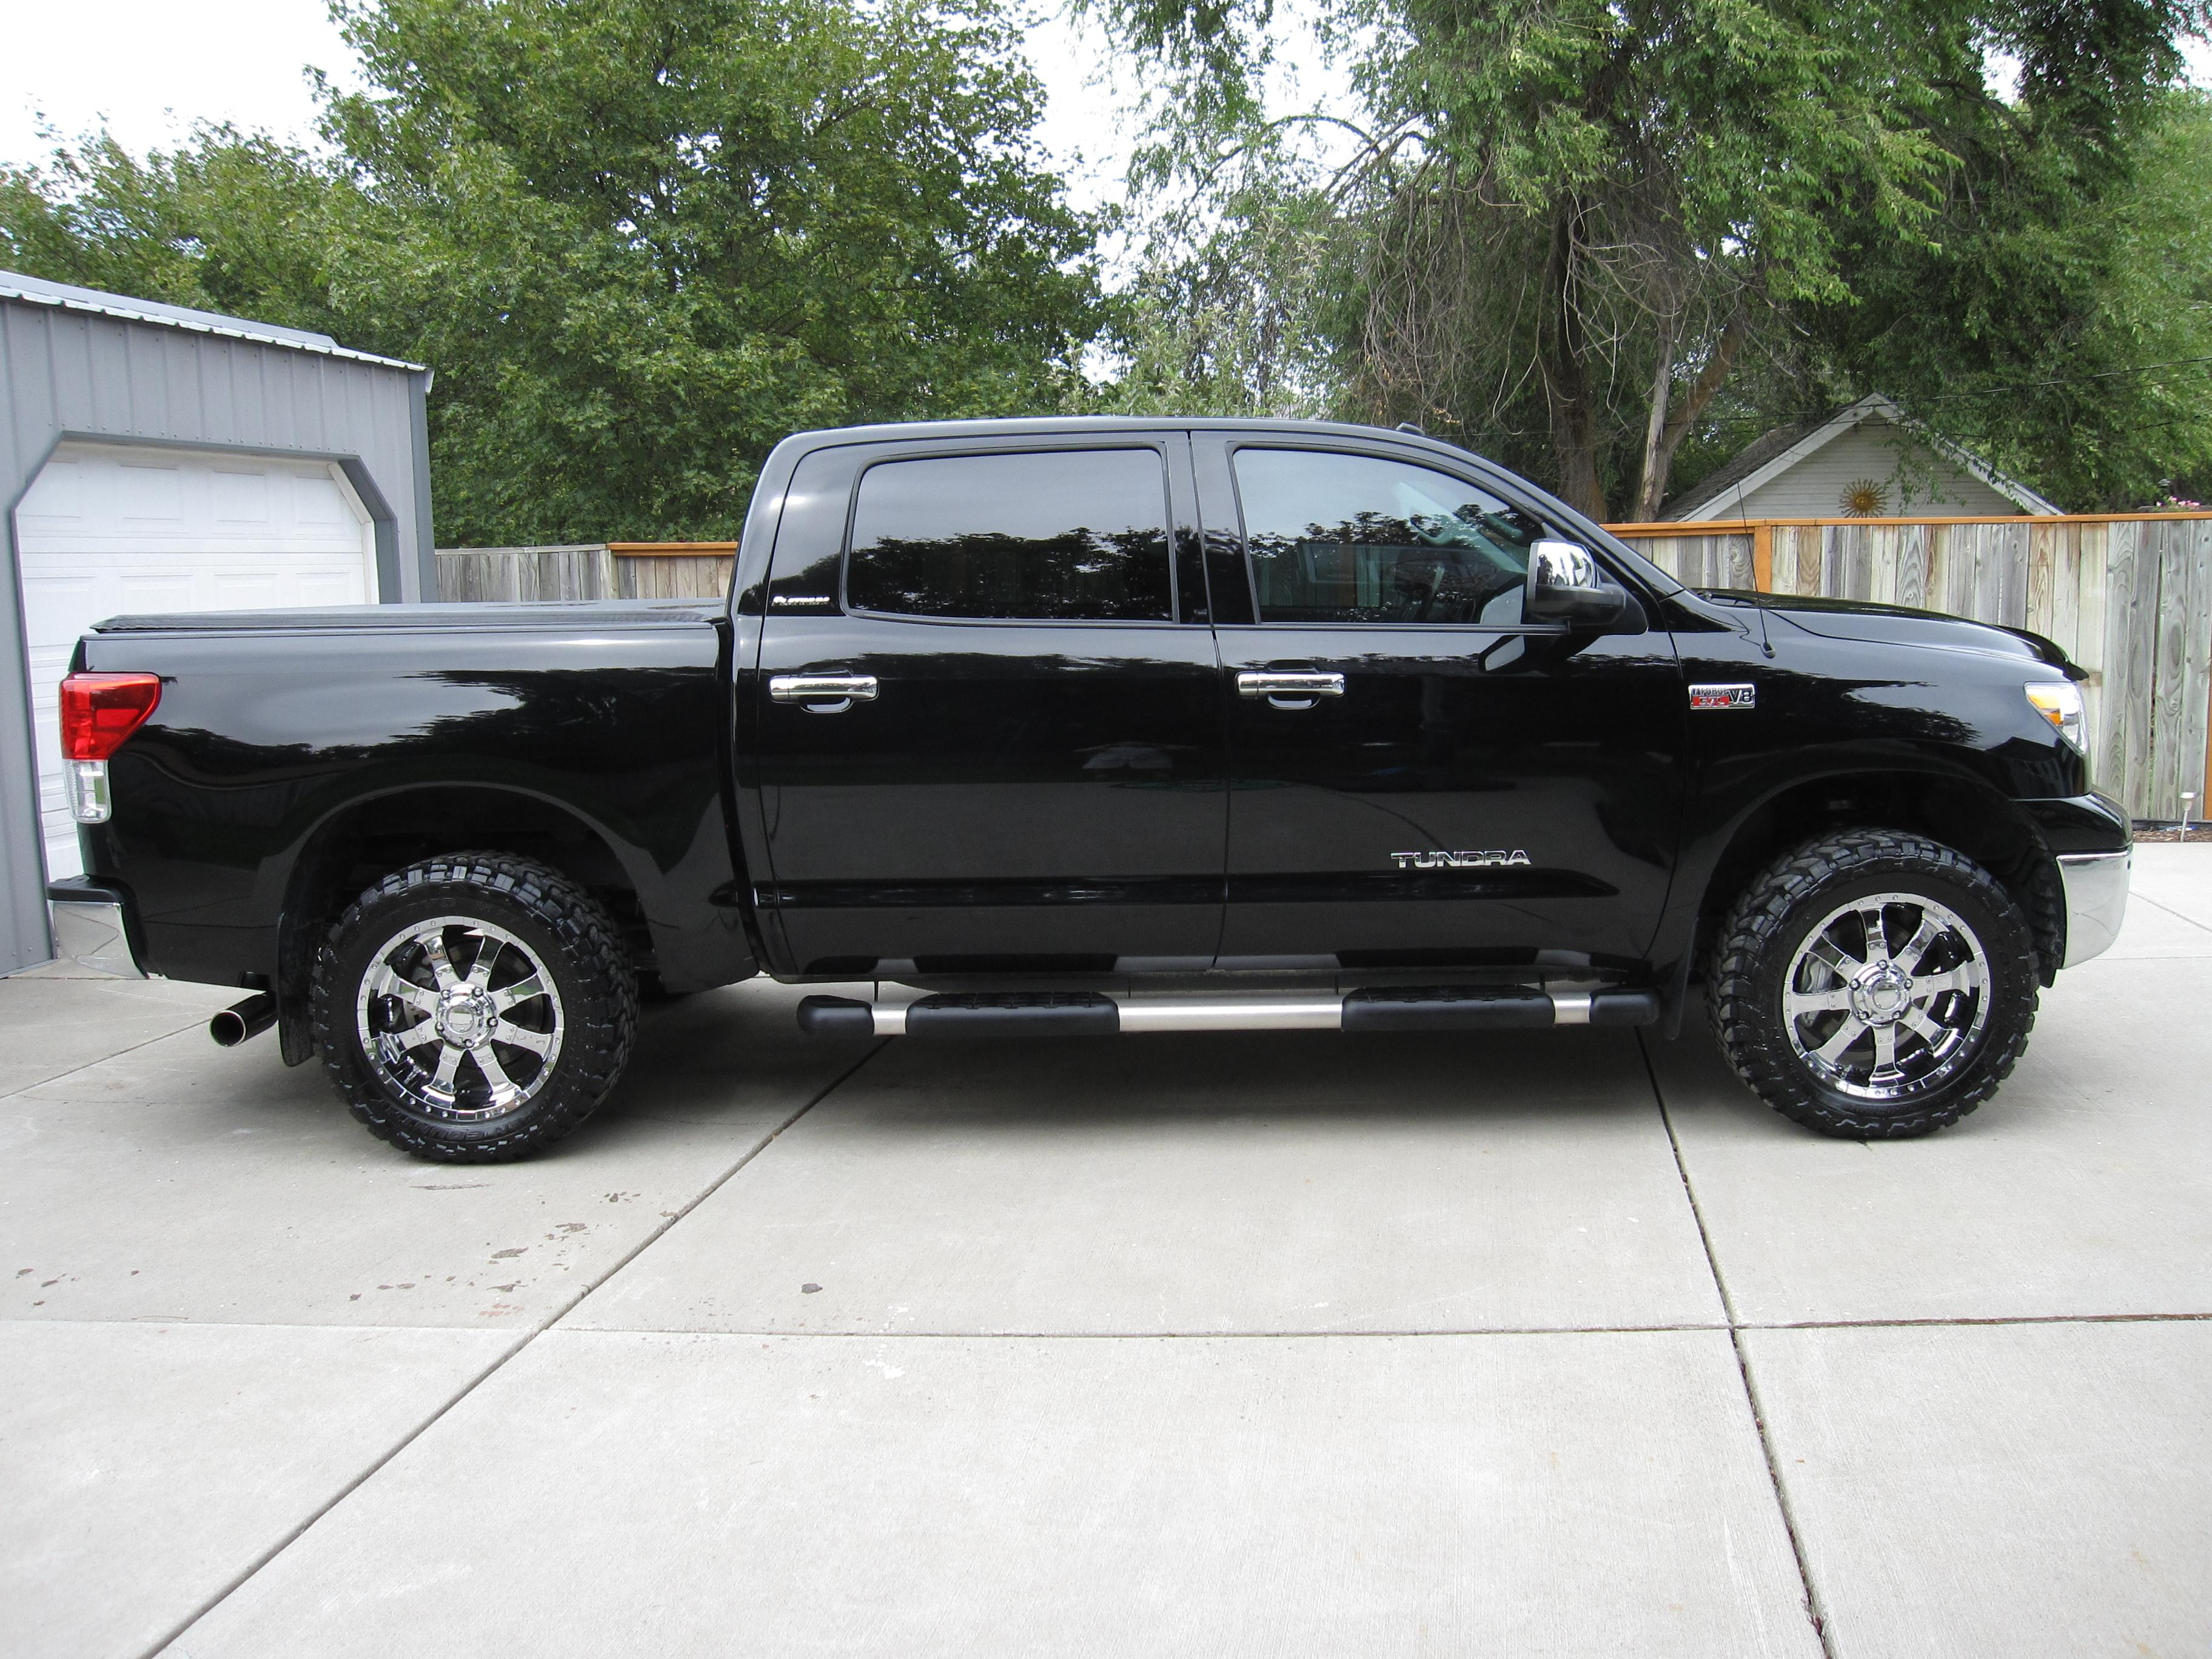 toyota tundra crewmax view all toyota tundra crewmax at cardomain. Black Bedroom Furniture Sets. Home Design Ideas